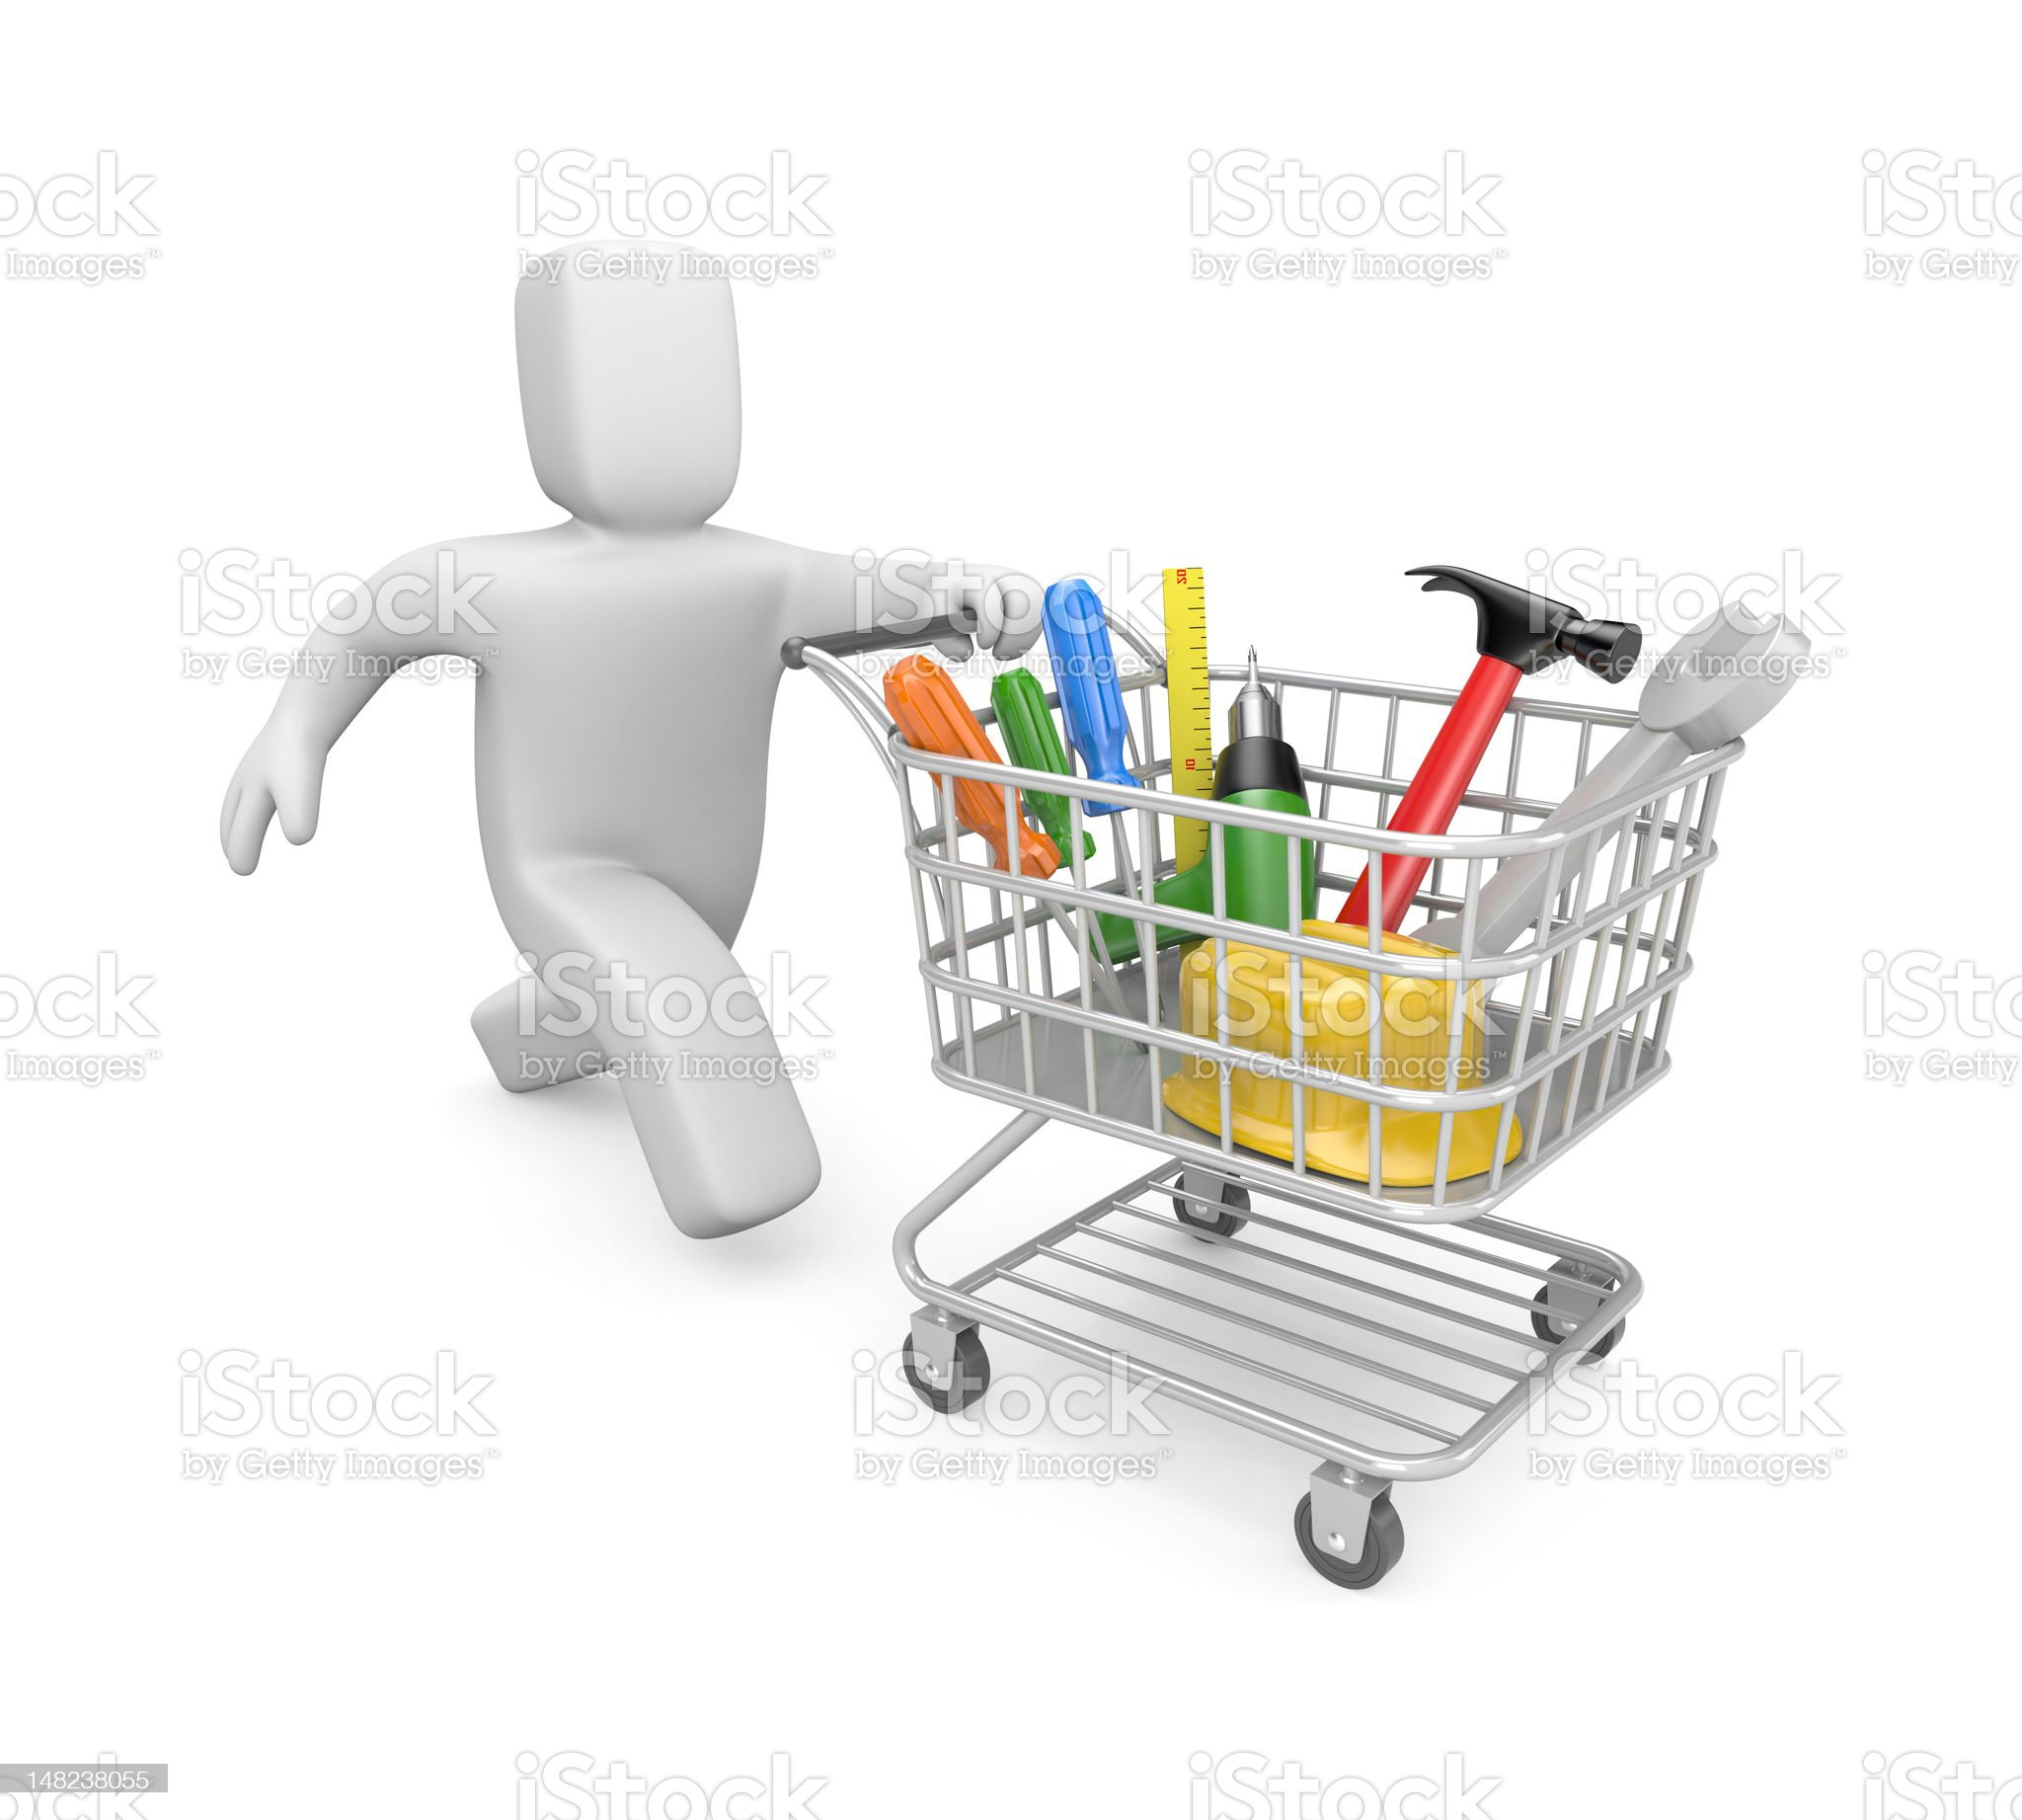 Person purchase of tools royalty-free stock vector art